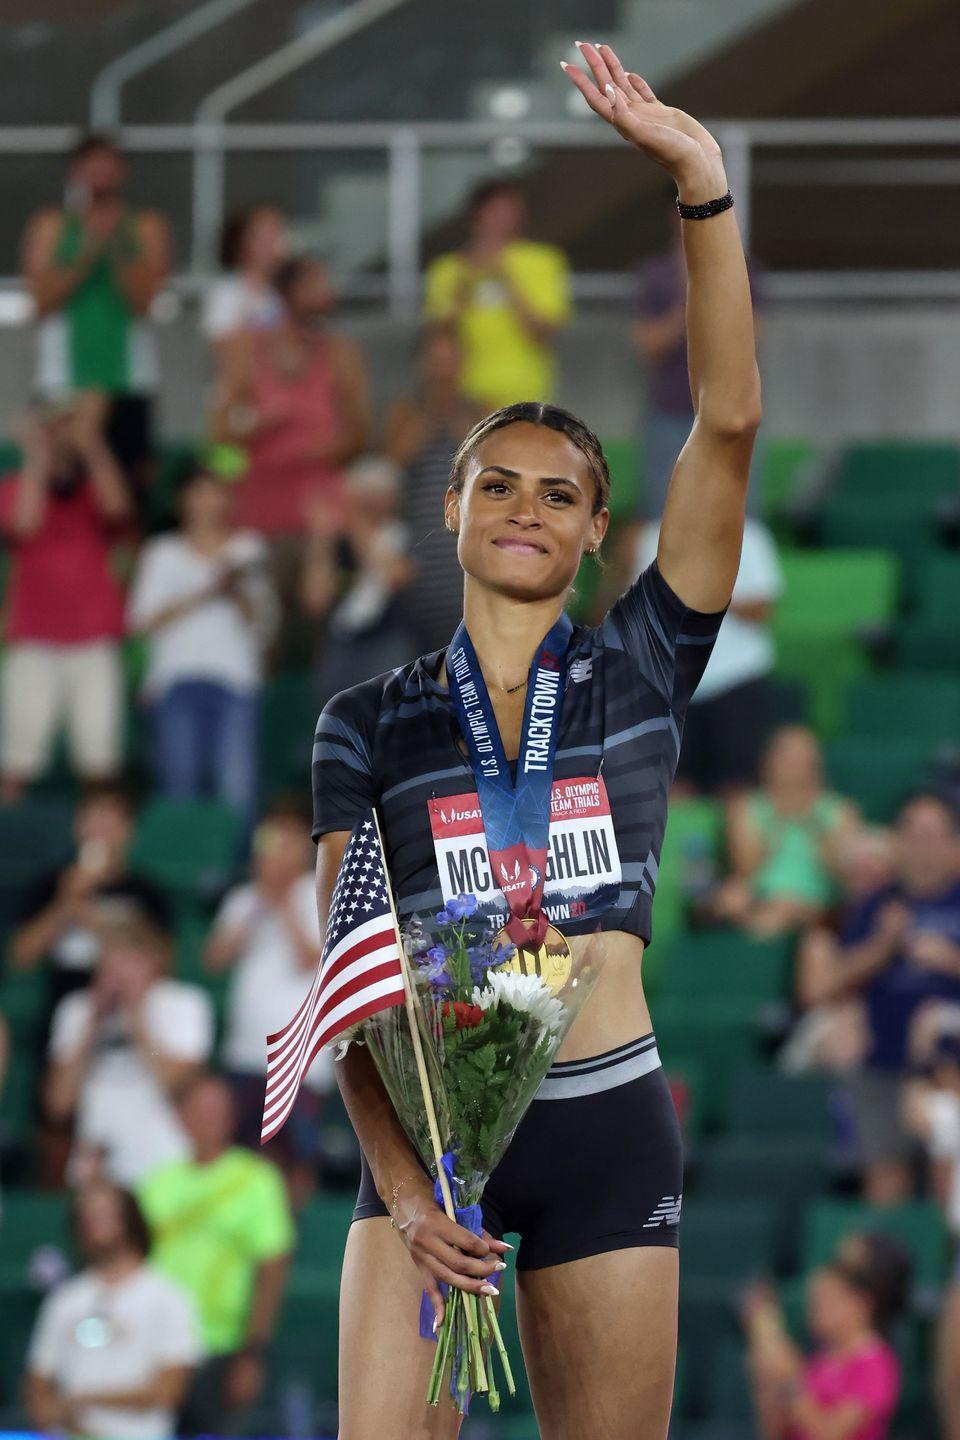 <p><strong>Sport: </strong>Track & Field</p><p>During June's Olympic Trials, McLaughlin broke the world record in the women's 400m hurdles at 51.90 seconds. She is the first woman to run the event in less than 52 seconds. Tokyo is the runner's second Olympics. In 2016, at the age of 16, she was the youngest athlete on the U.S. track and field team.</p>